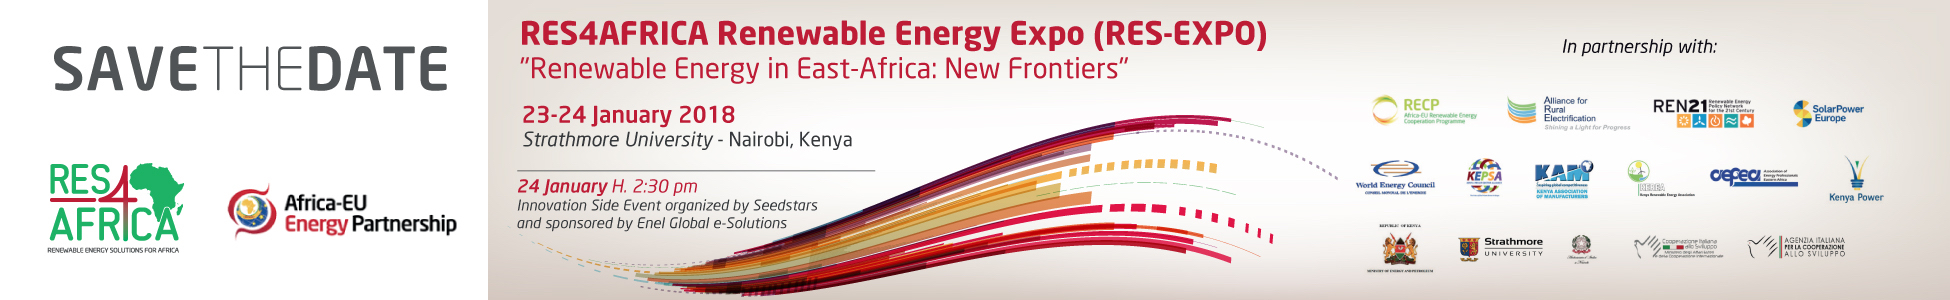 https://www.ruralelec.org/event-calendar/res4africa-res-expo-2017